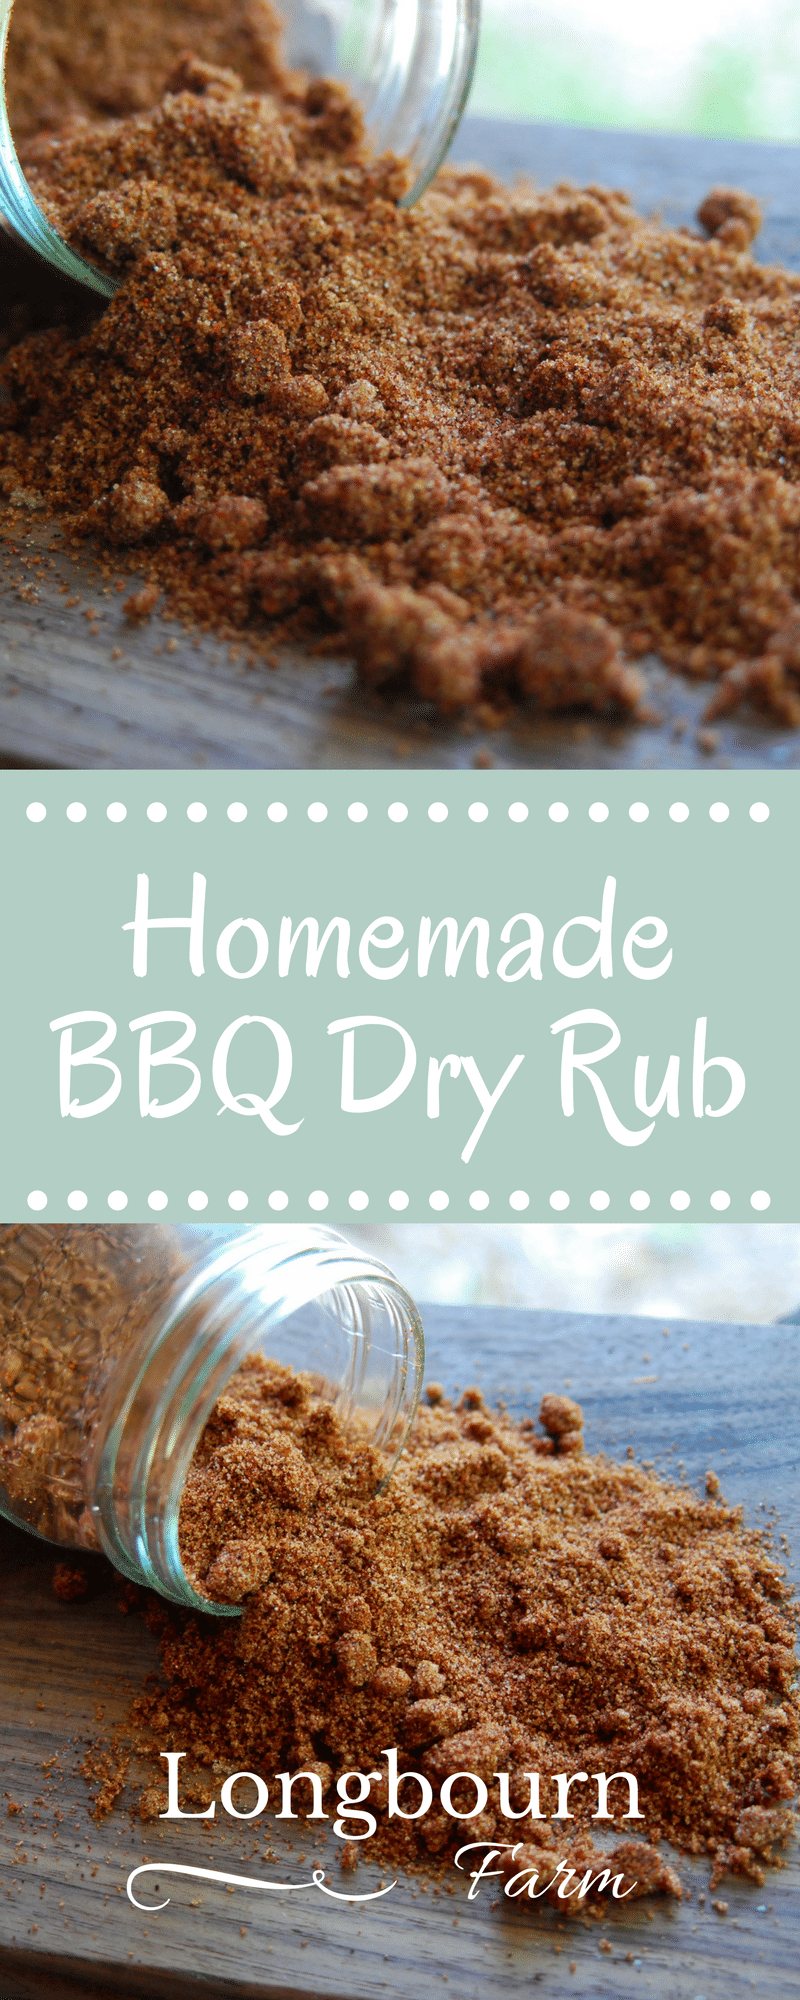 Grilling time? Check out this homemade BBQ dry rub recipe that is sure to take your meat to the next level. Make a bunch and store it in the pantry! via @longbournfarm